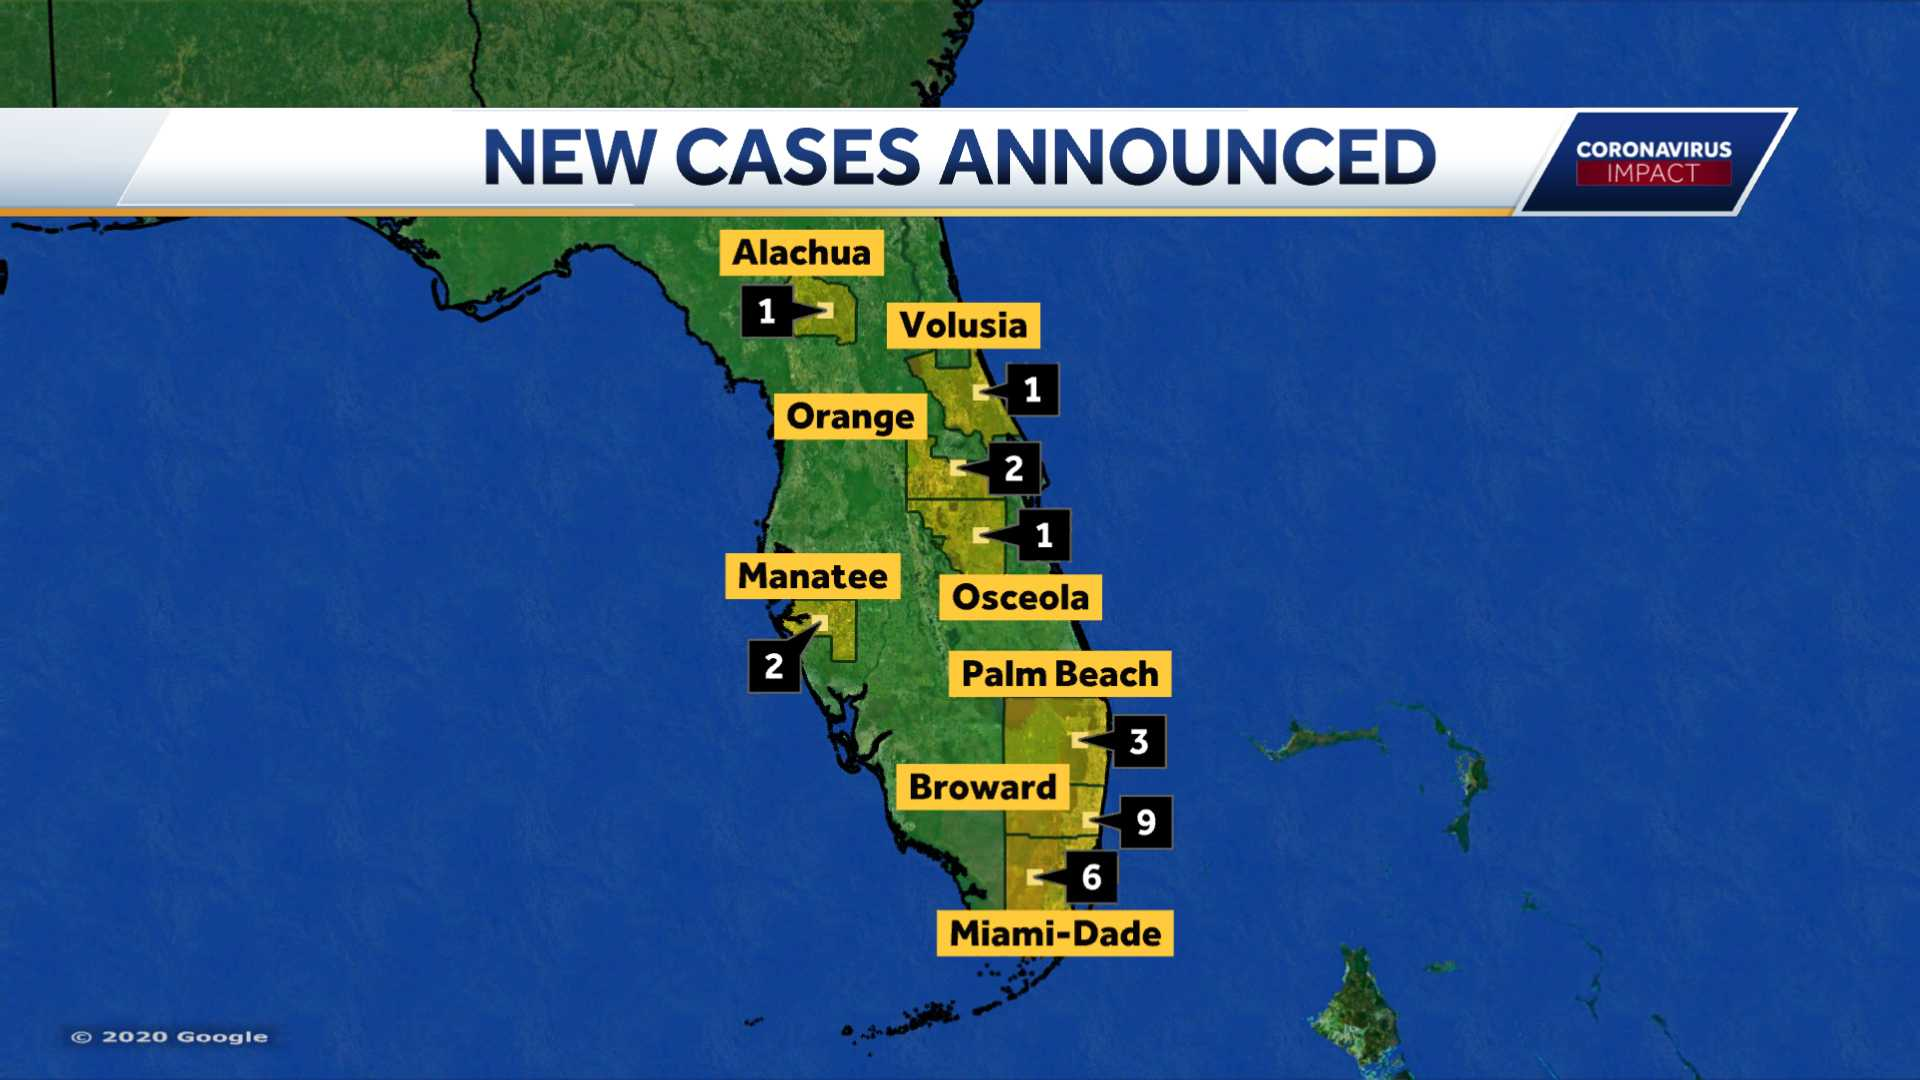 Florida Department of Health Announces 25 New Positive COVID-19 Cases